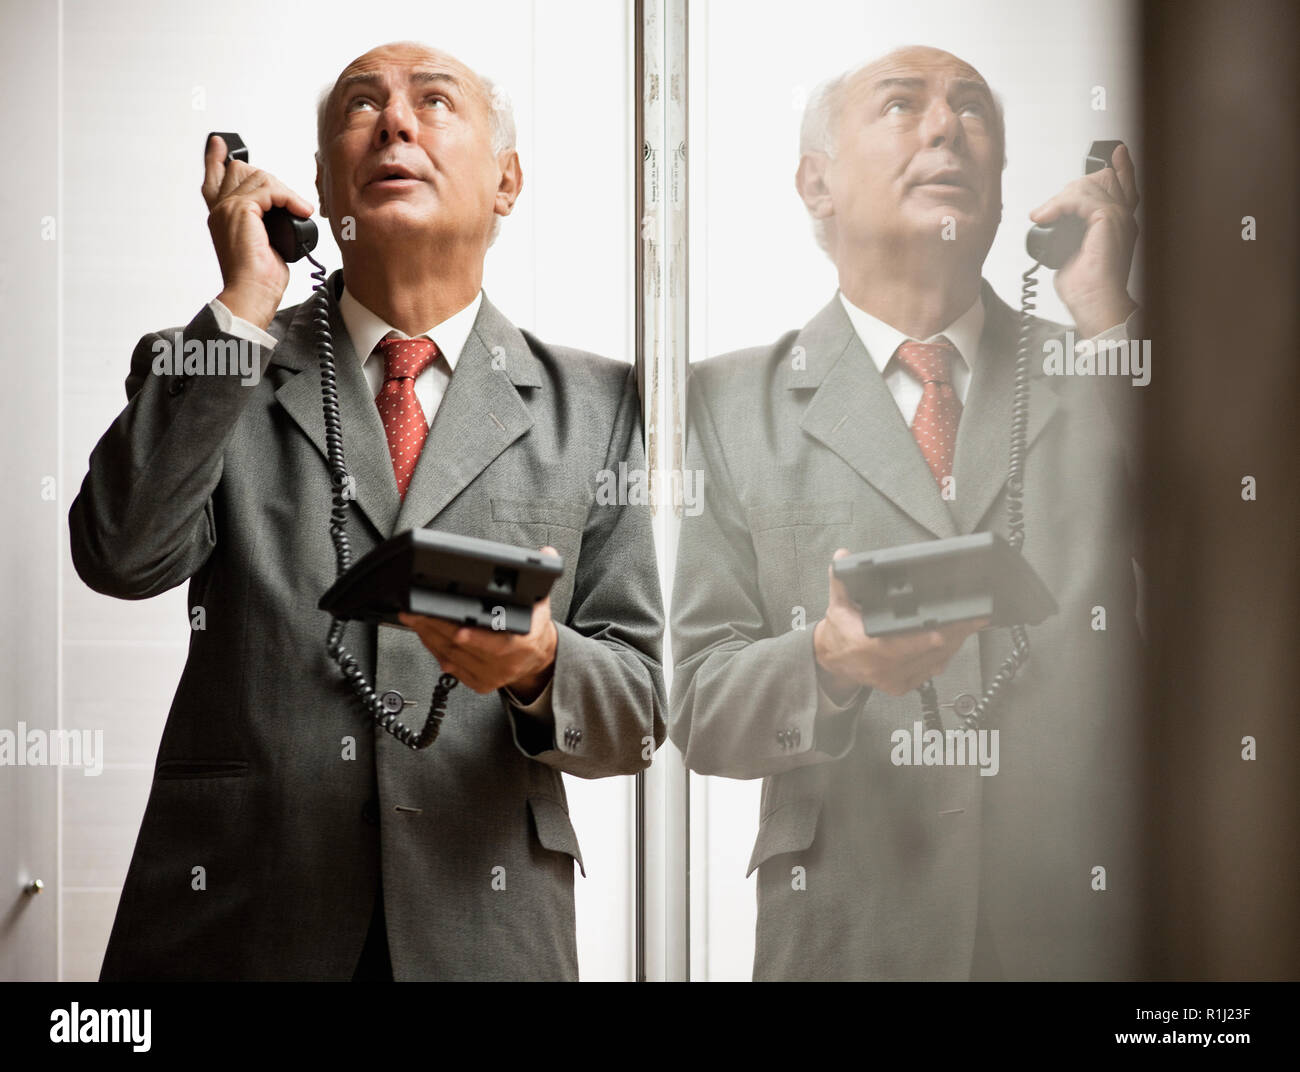 Senior businessman on a stressful phone call. - Stock Image